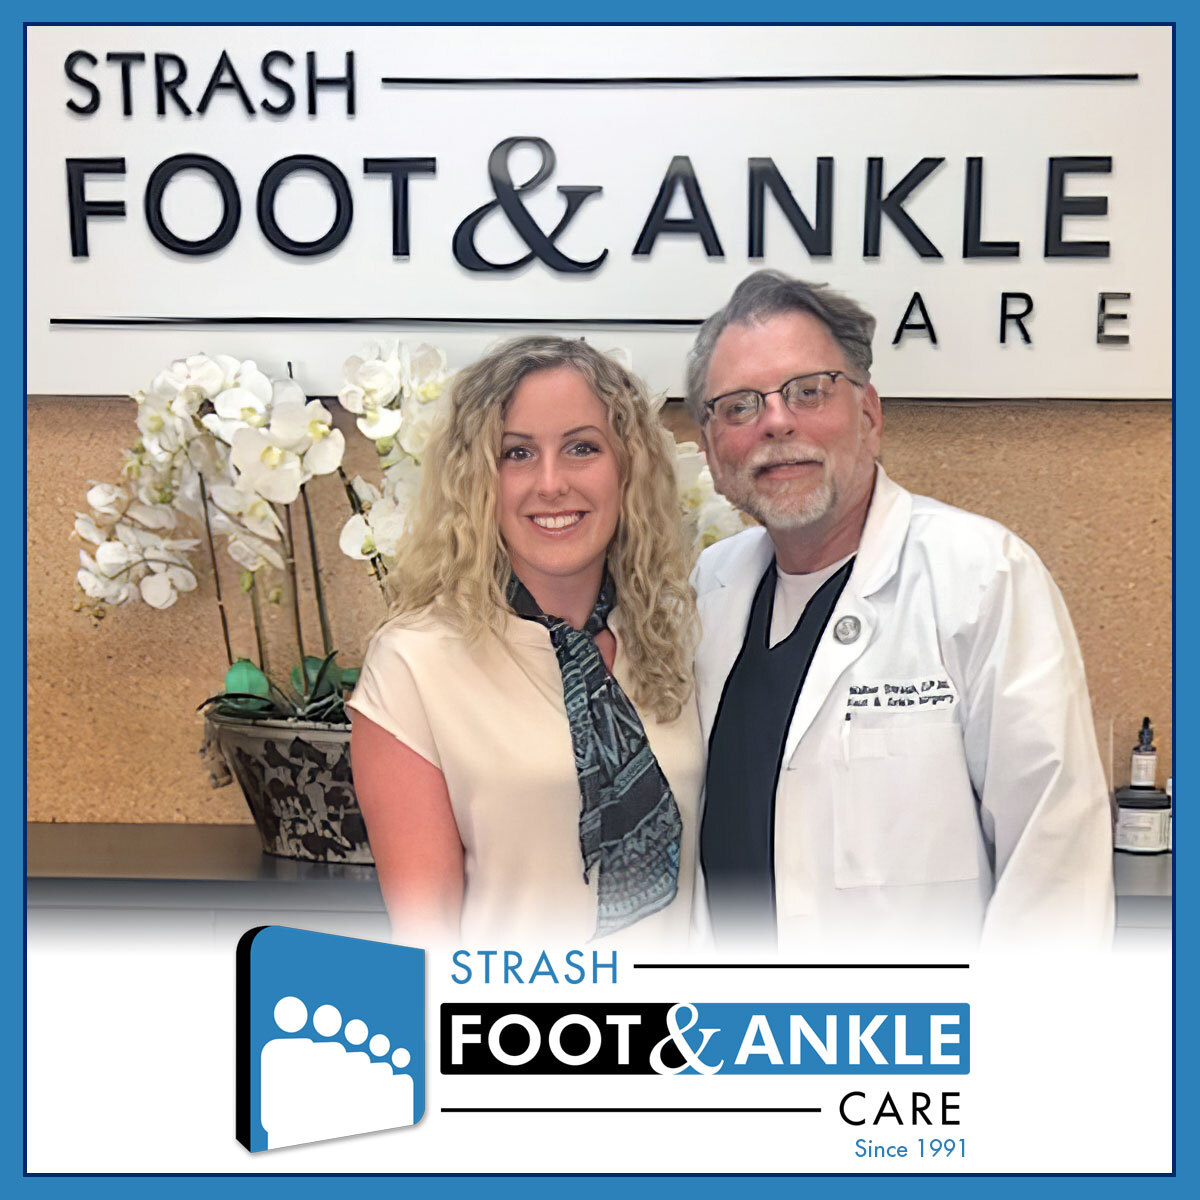 Strash Foot & Ankle Mentorship